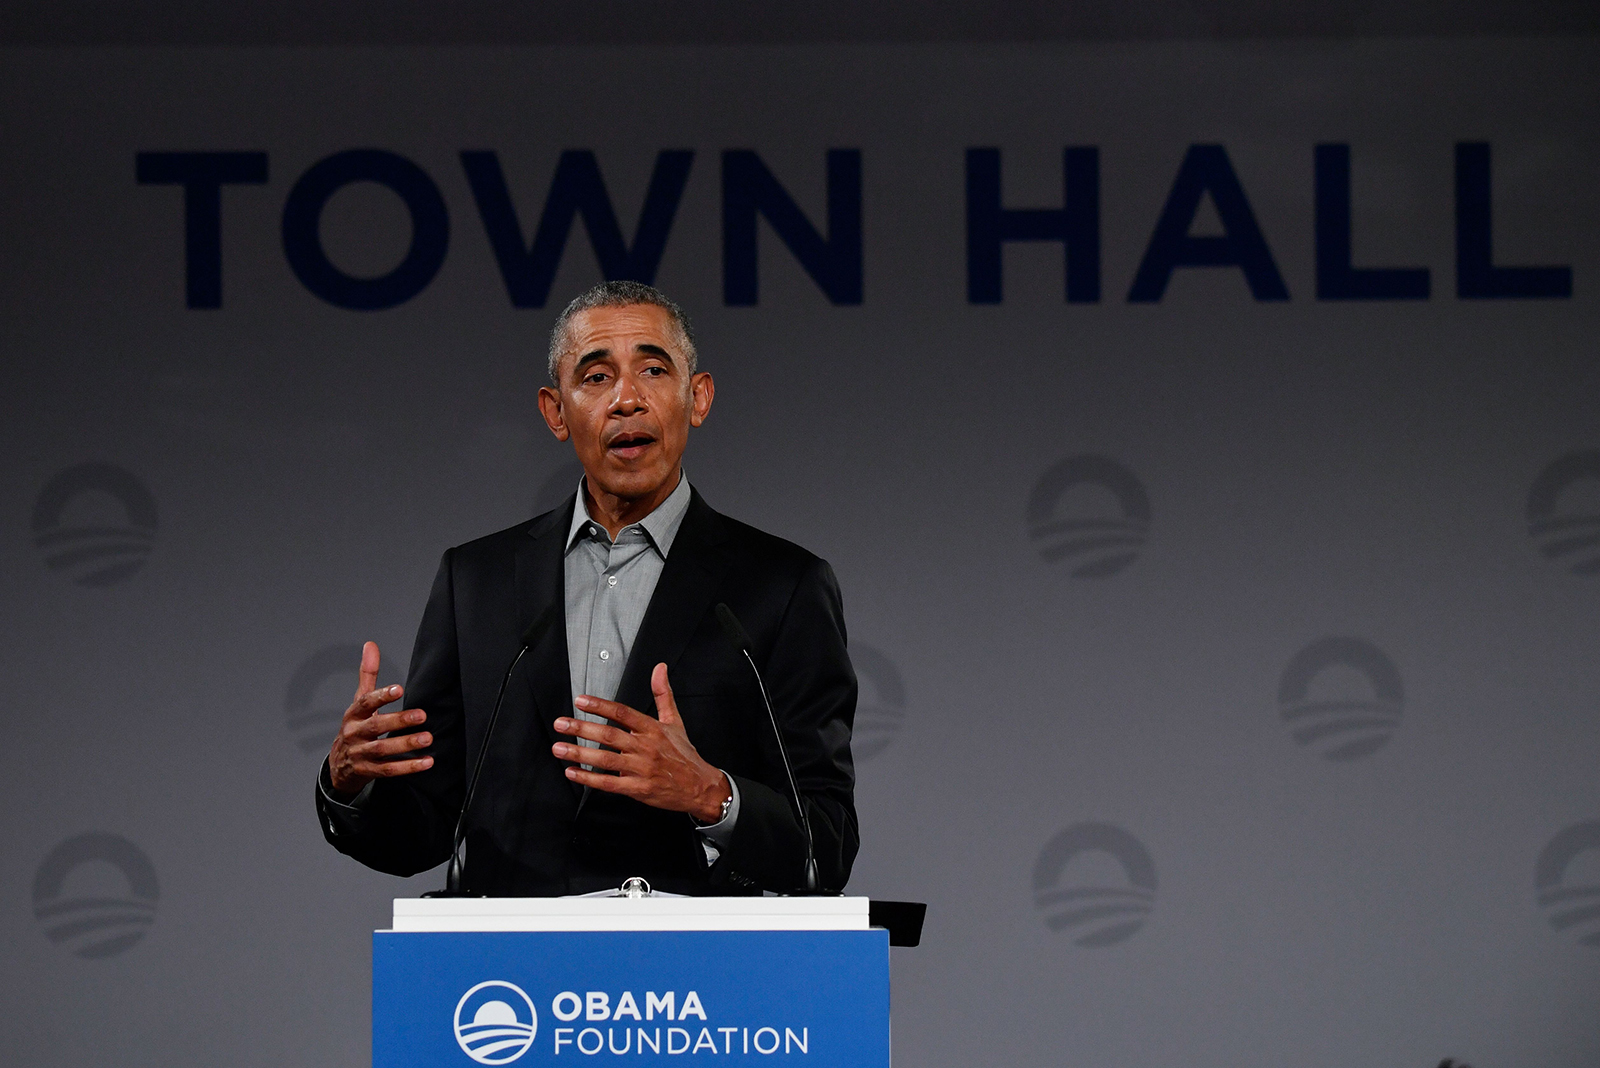 Former President Barack Obama address a townhall talk to discuss, among others, the future of Europe with young people on April 6, 2019 in Berlin.